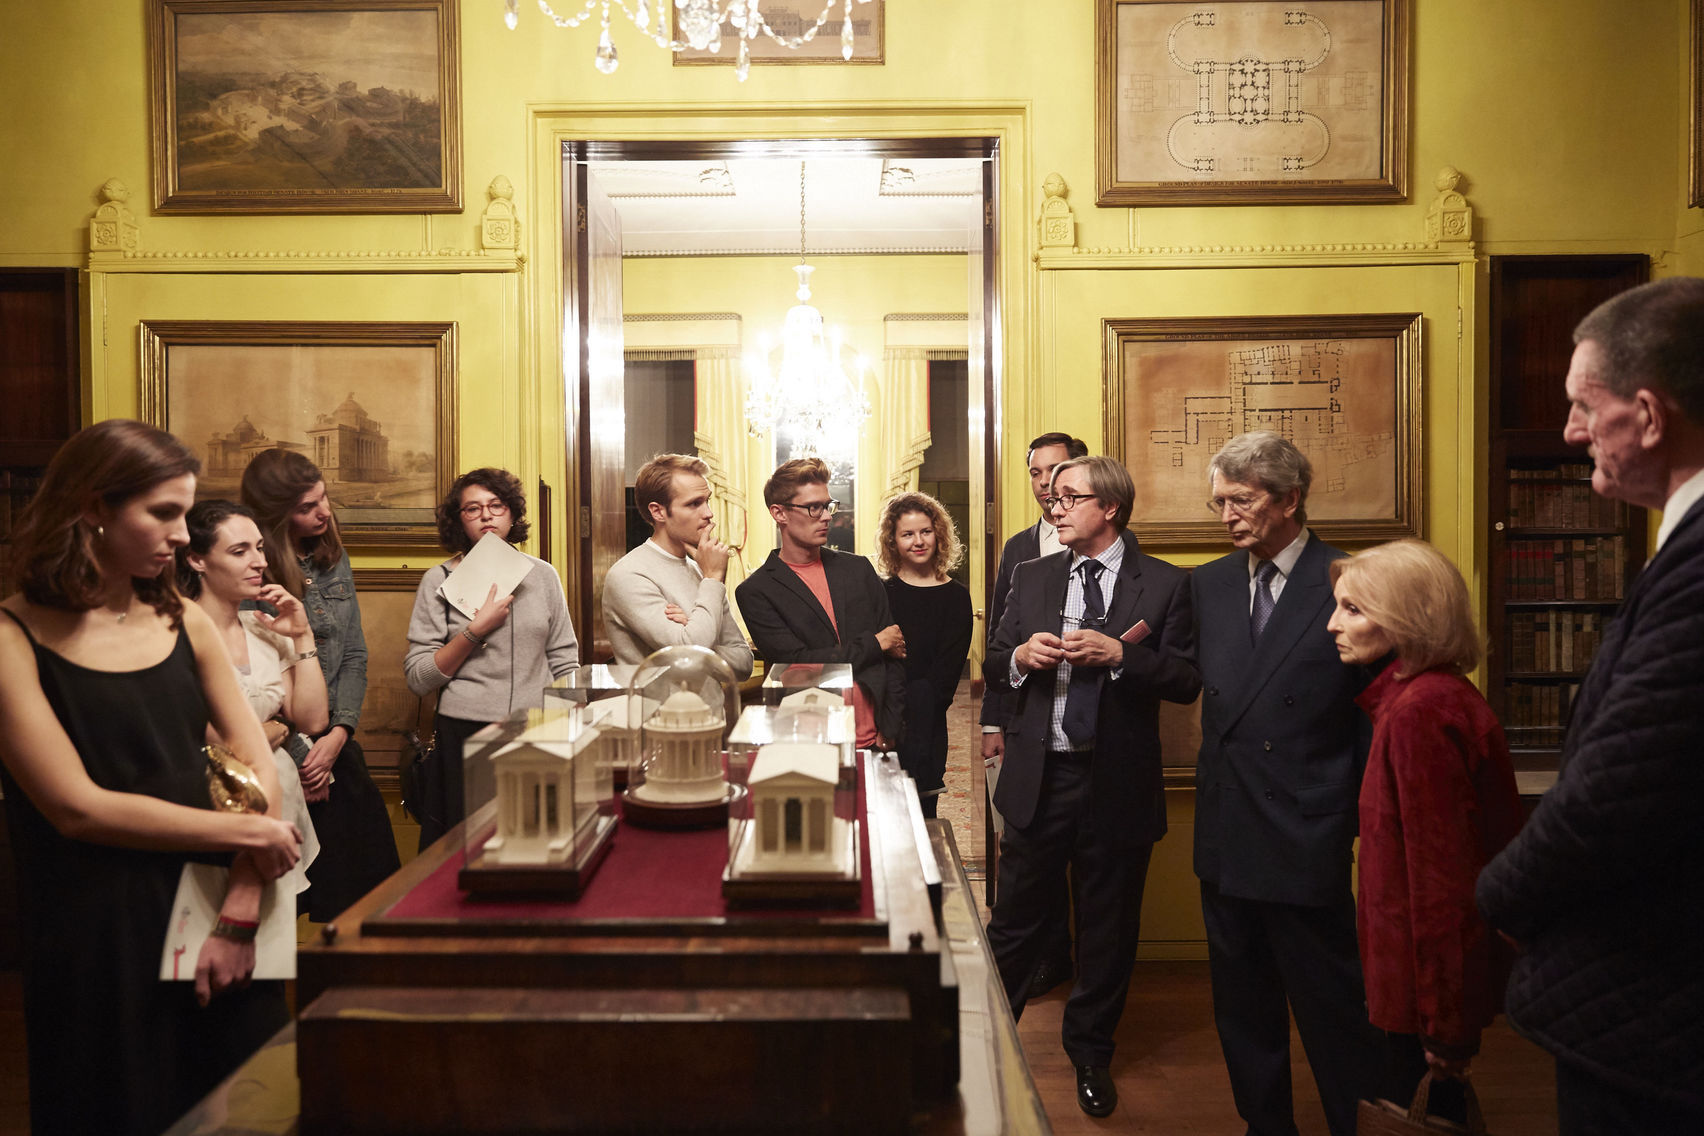 Sir John Soane's Museum with people inside standing and talking